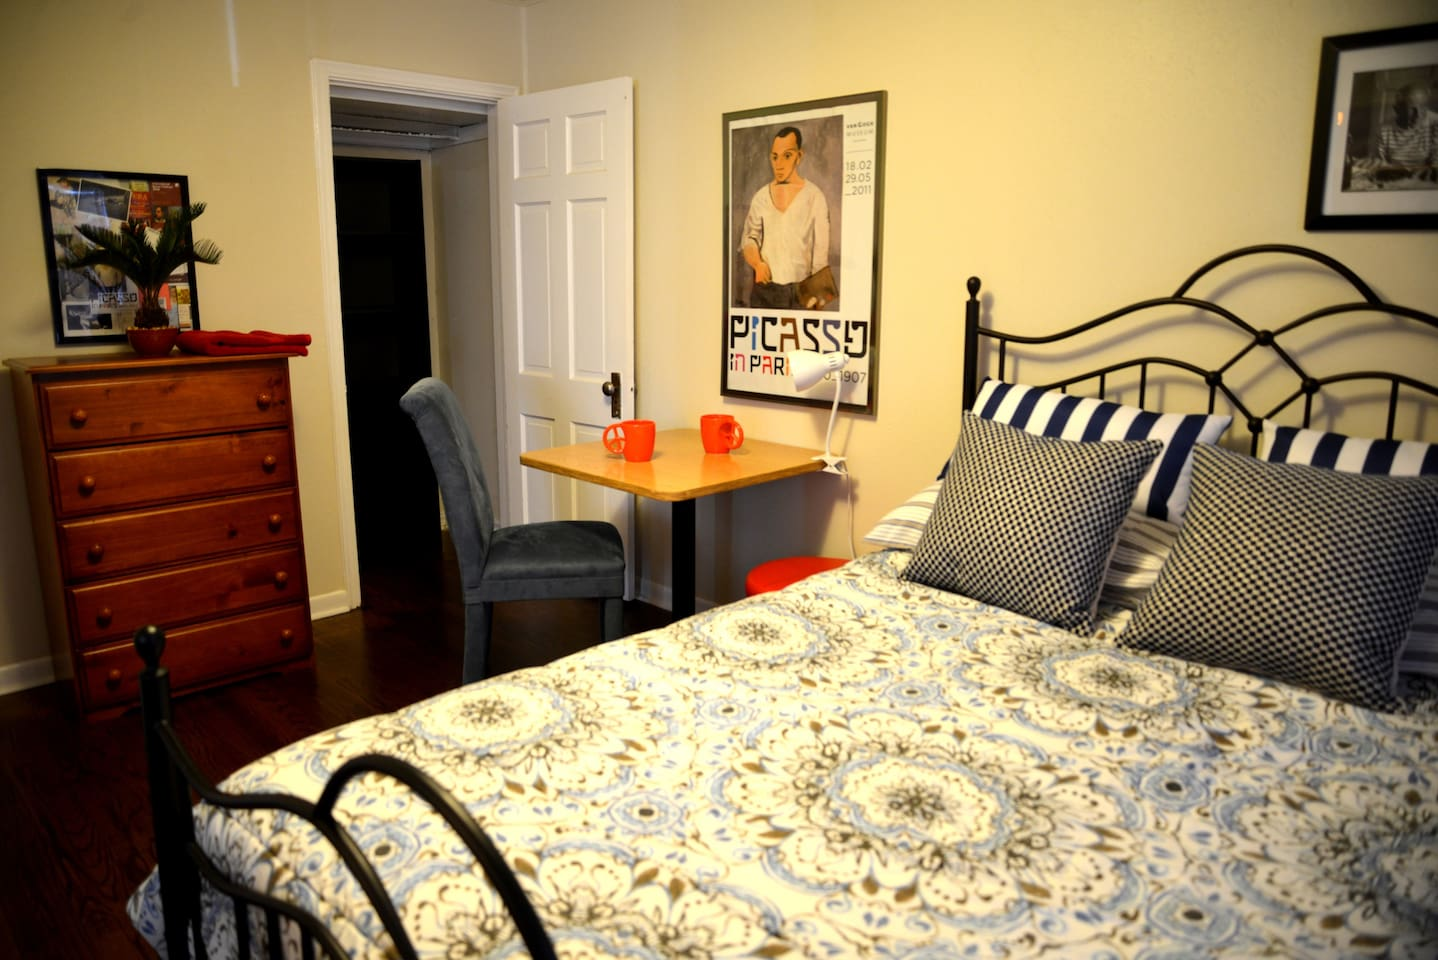 A Simple Comfy Room for 2 in OKC